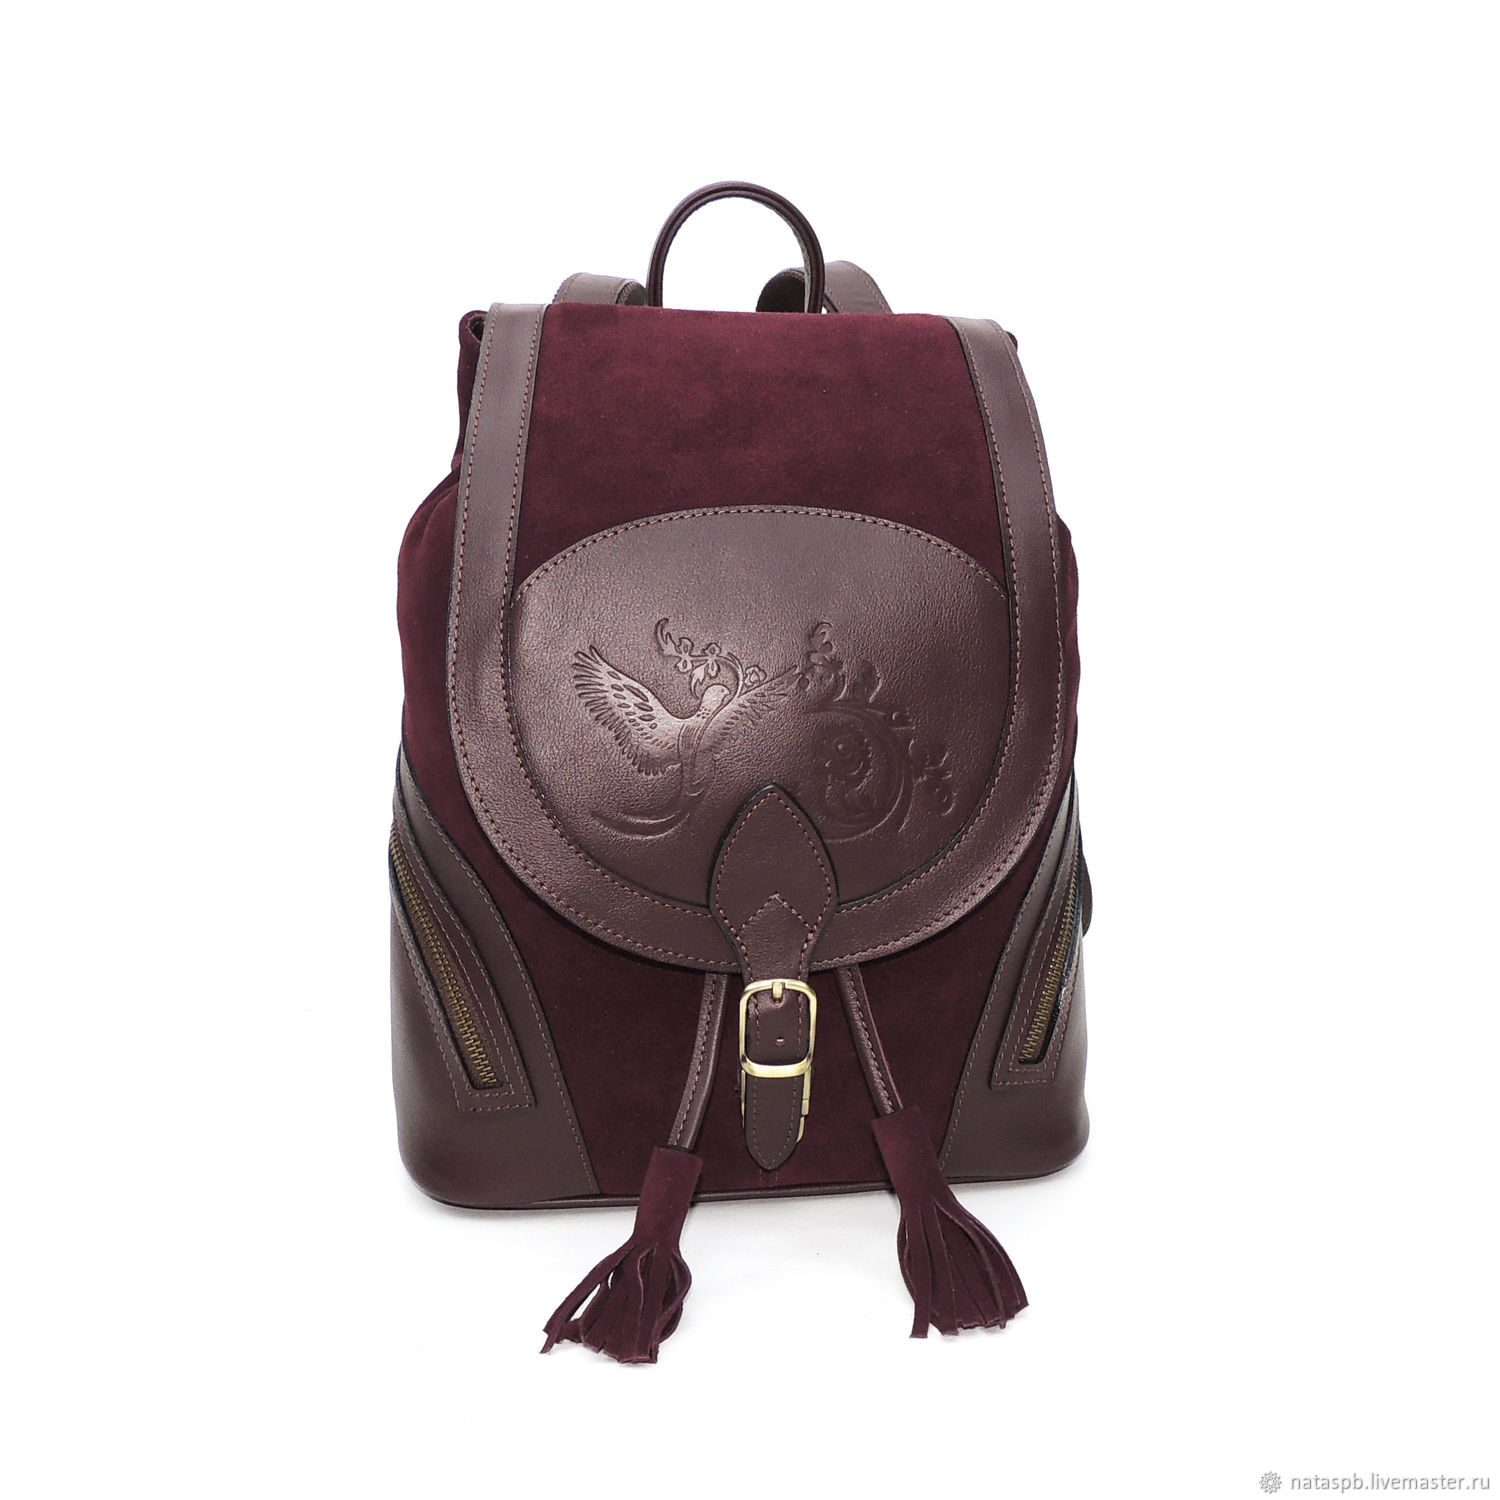 Backpack women's leather Bordeaux Cashmere Mod R50-482, Backpacks, St. Petersburg,  Фото №1